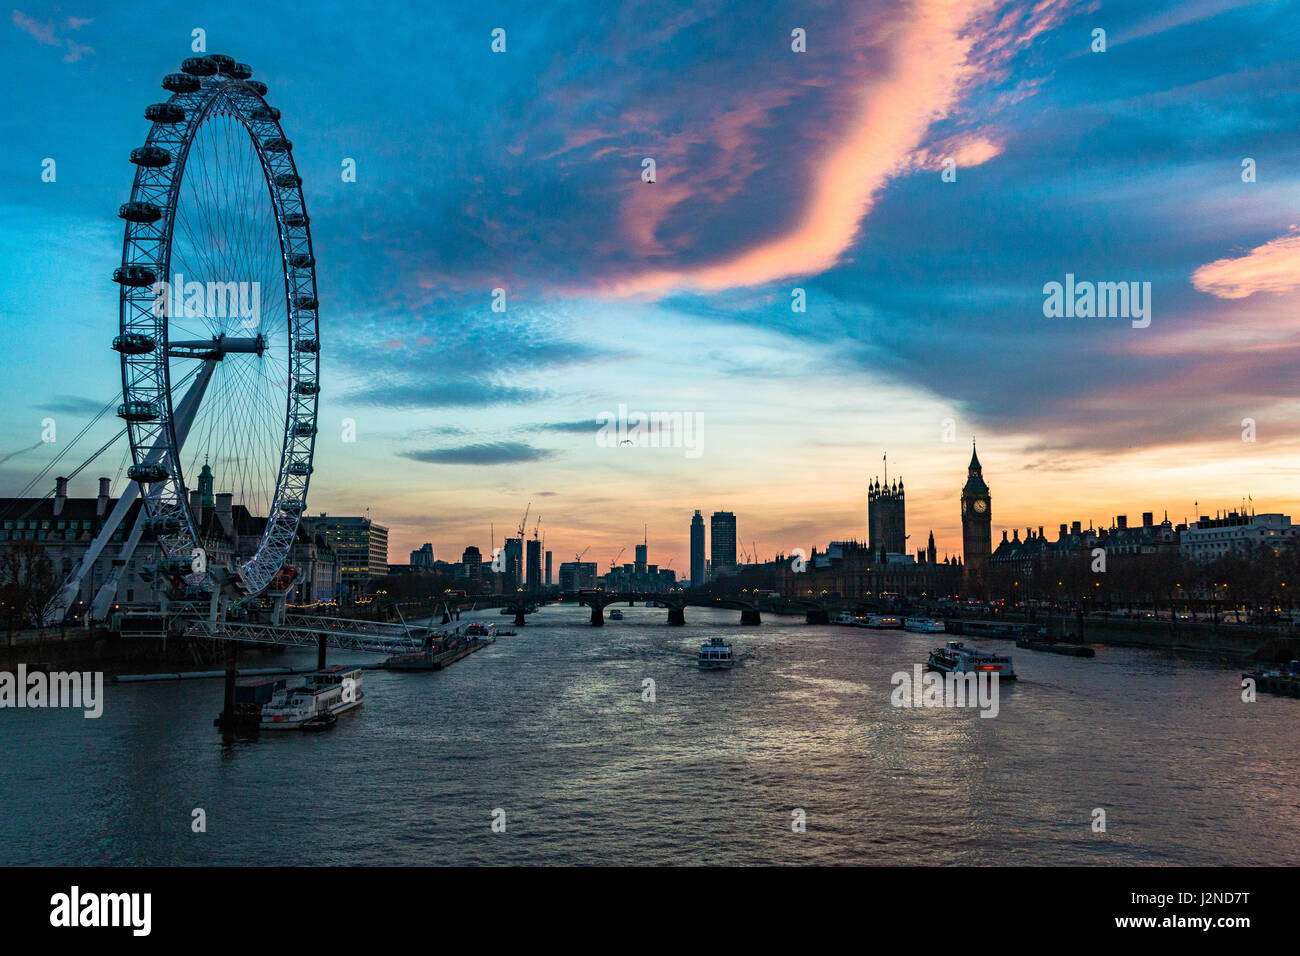 The London Eye and the Palace of Westminter on the Thames in London - Stock Image